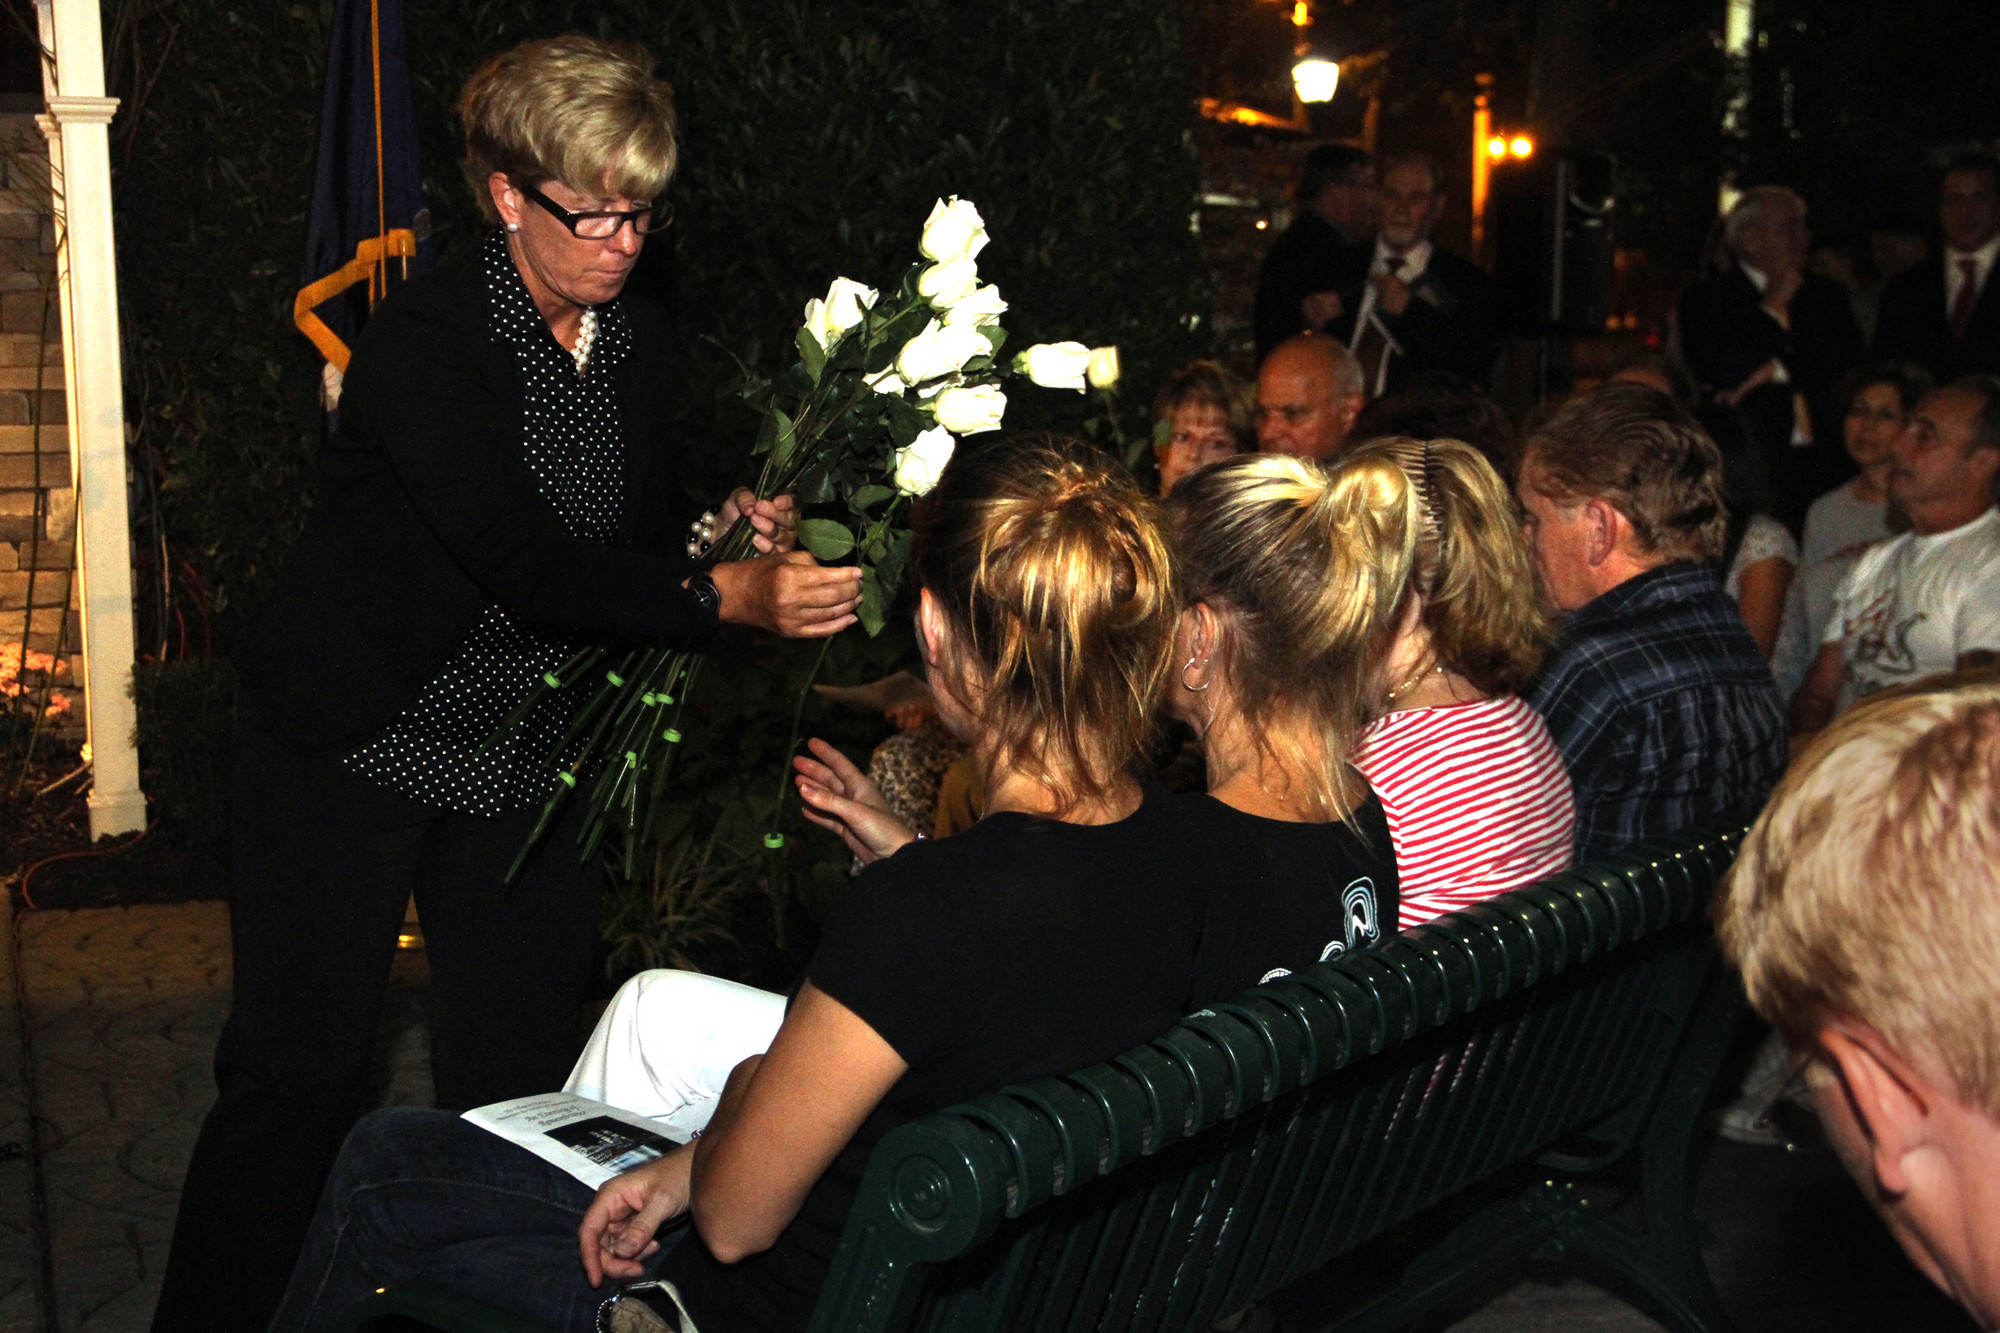 Mayor Patti McDonald distributed flowers to the victims' families to place on the memorial.